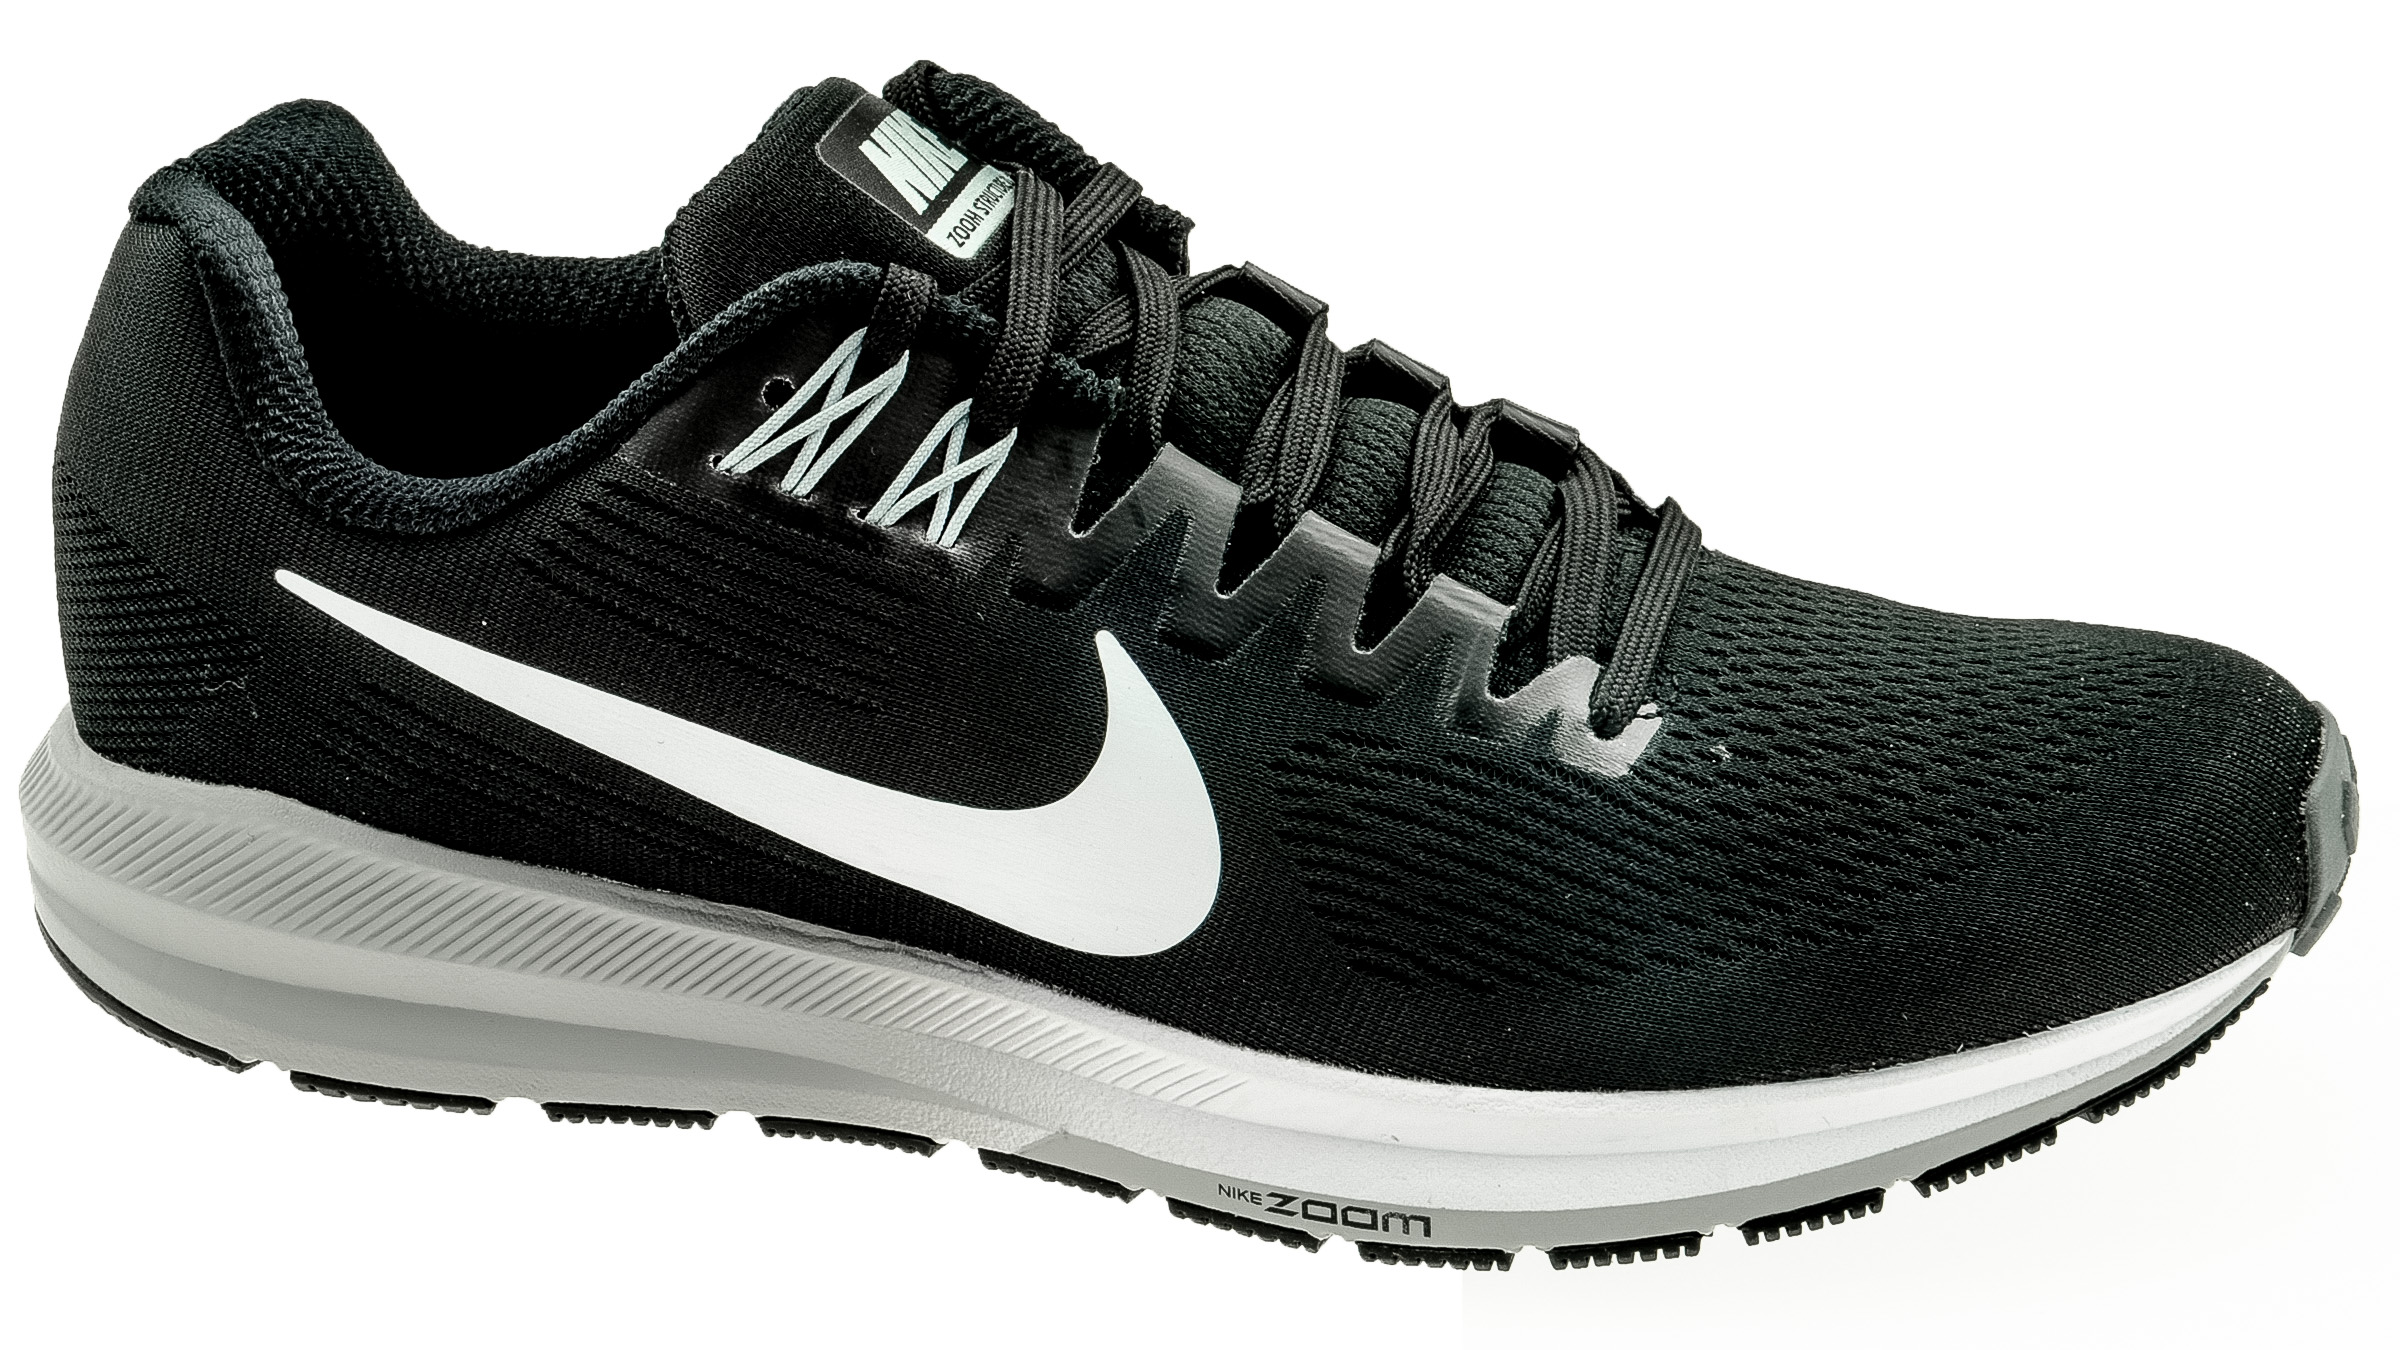 26280b8cbed9 Nike Air Zoom Structure 21 black white - wolf grey bestellen bij ...